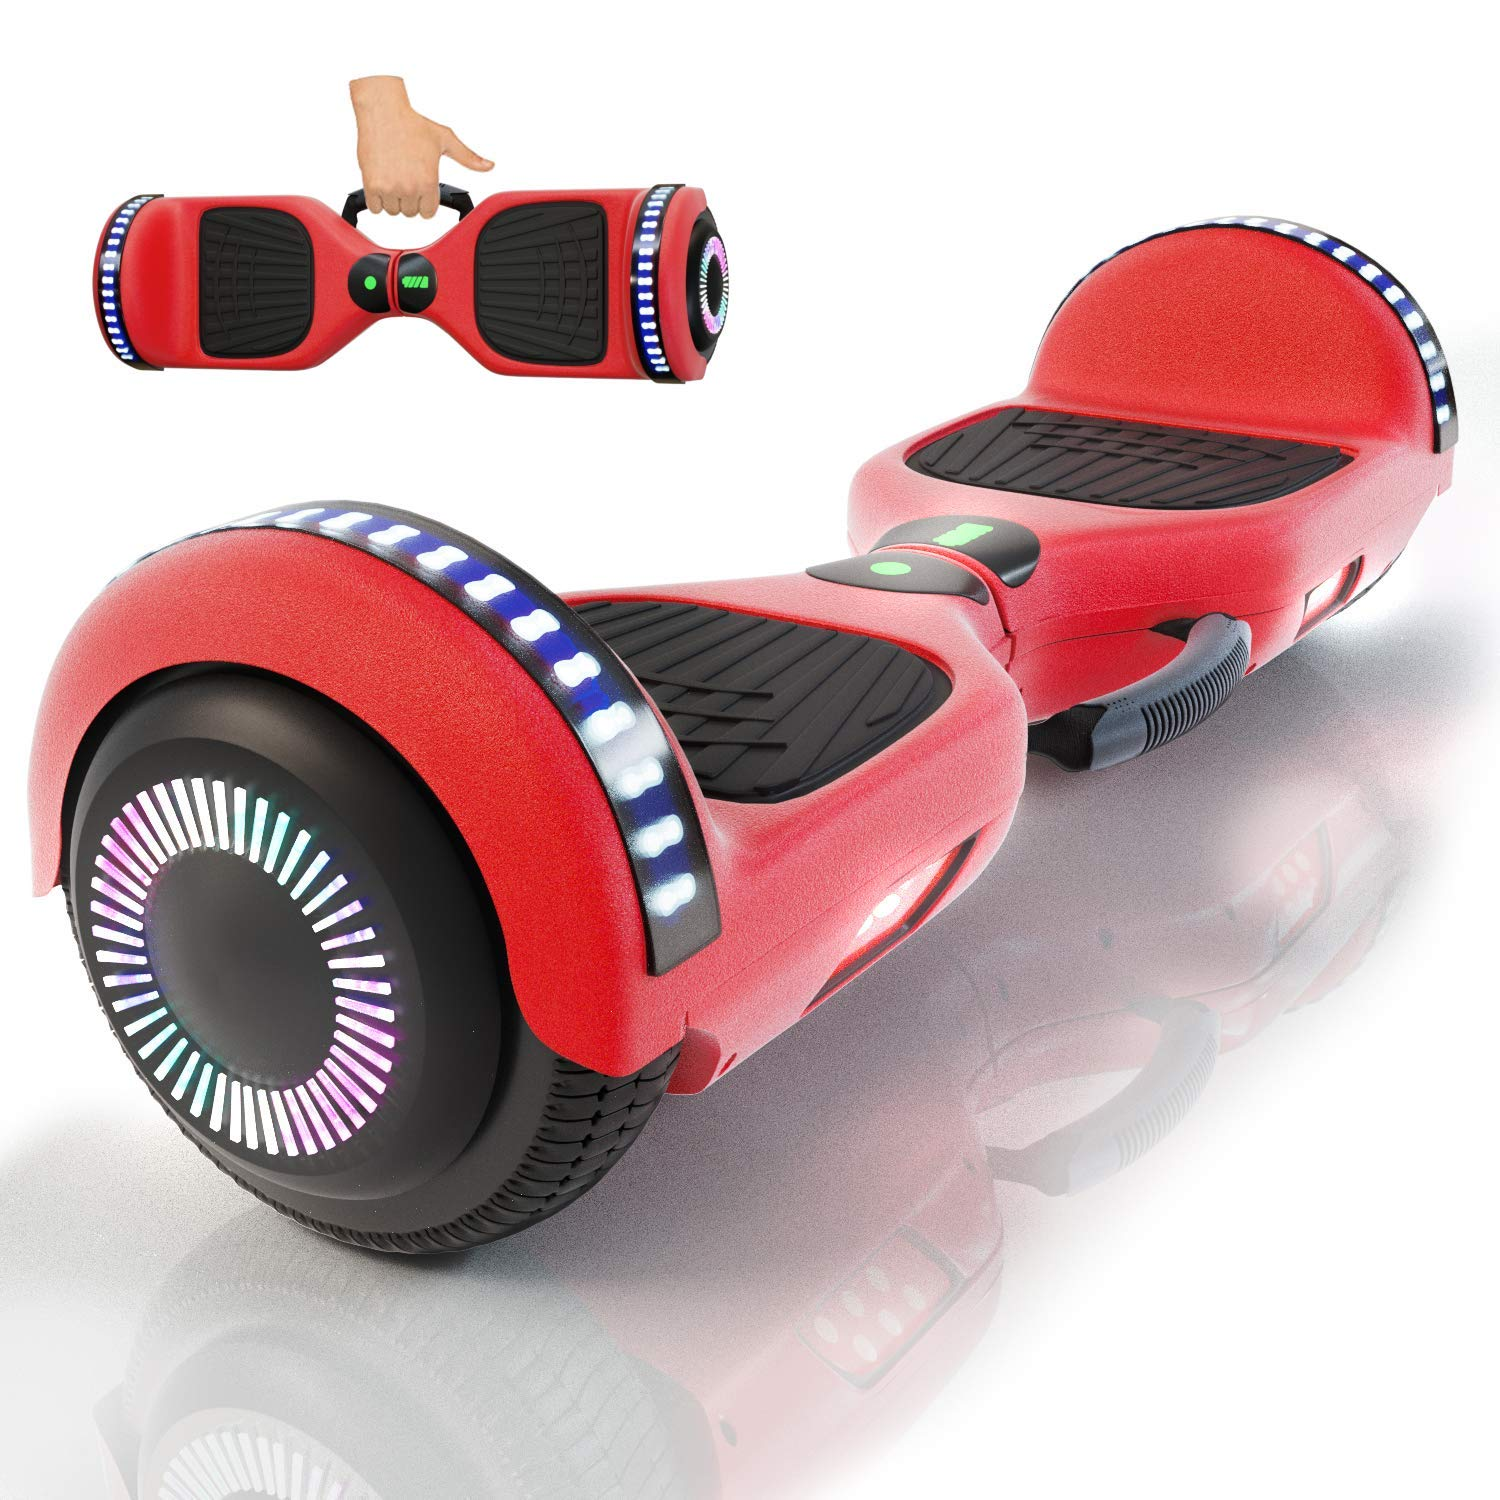 yayGear Hoverboard Self Balancing Scooter UL 2272 Certified with Powerful Bluetooth Speaker, Cool LED Lights and Easy Carrying Handle (Lava Red)